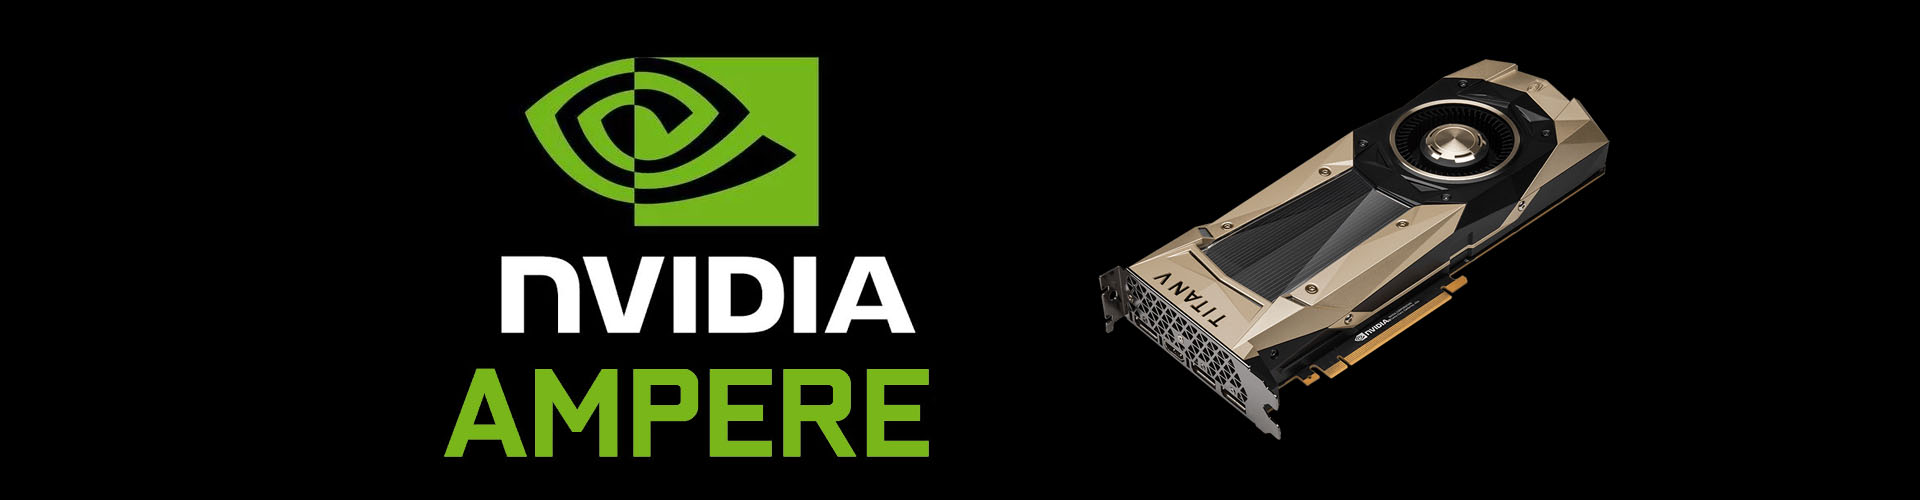 NVIDIA Ampere – Release Date, Specifications, Price, and Performance